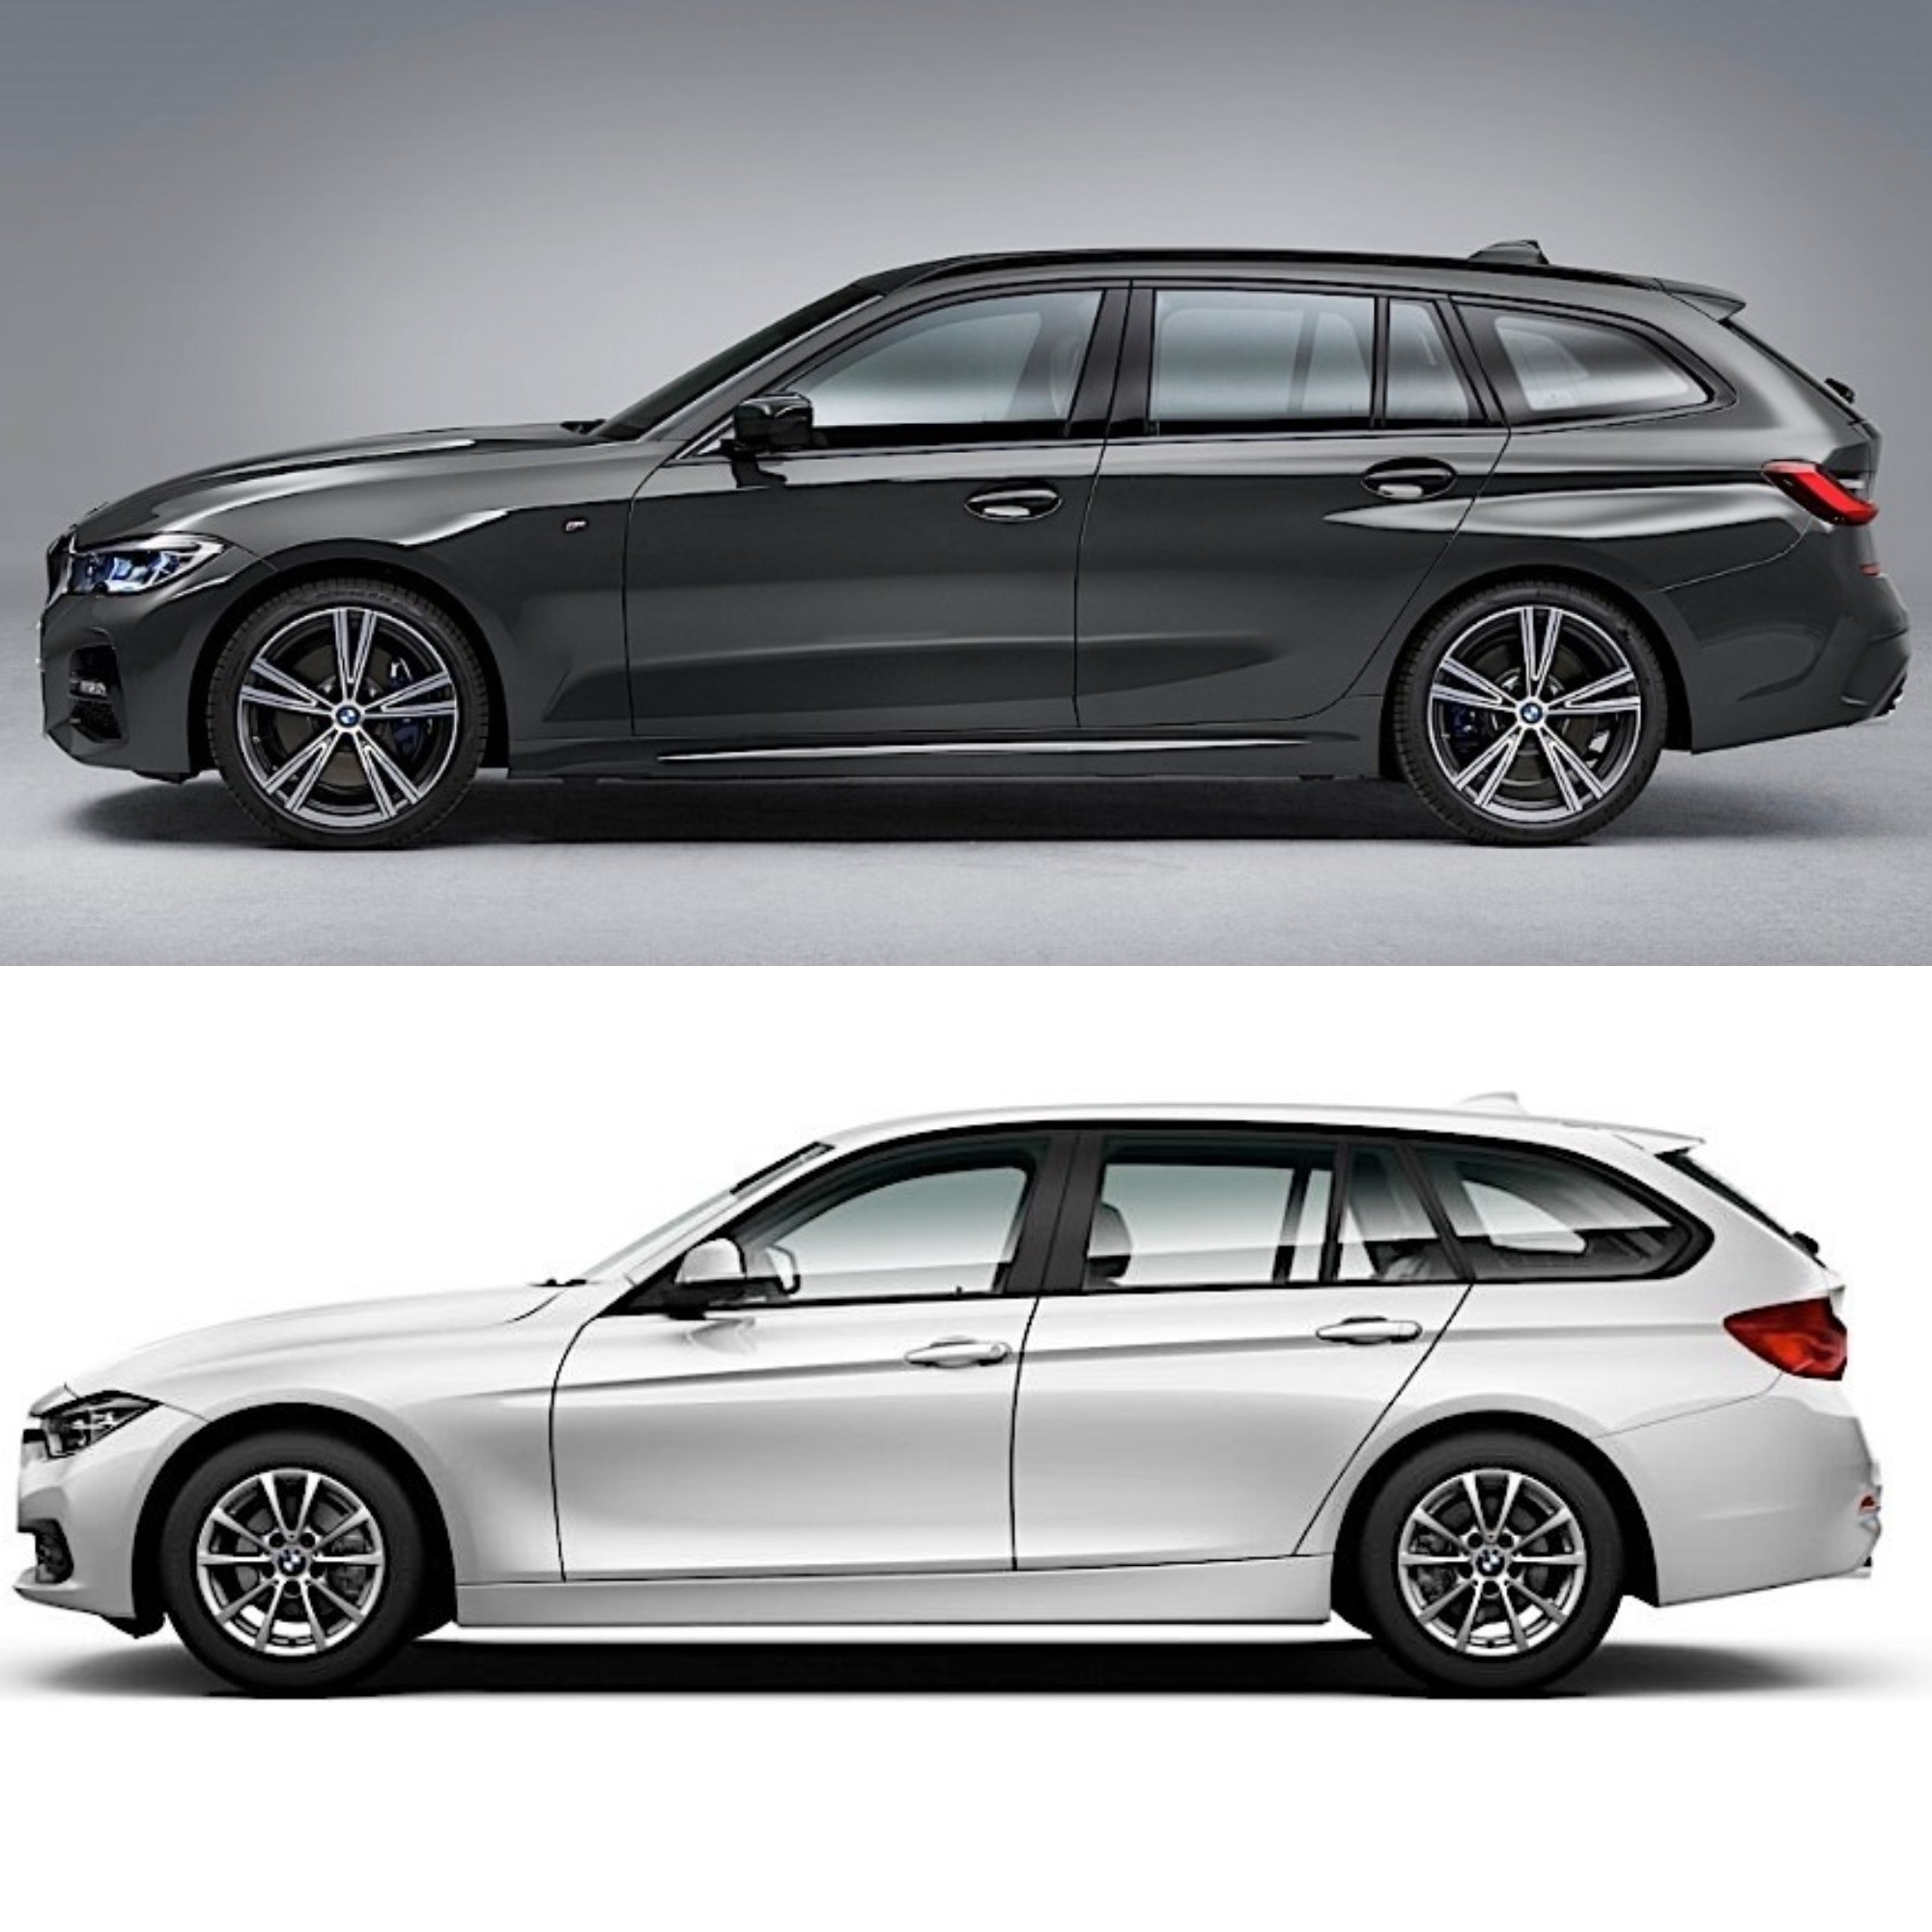 Photo Comparison: 2020 BMW 3 Series Touring Vs. 2016 BMW 3